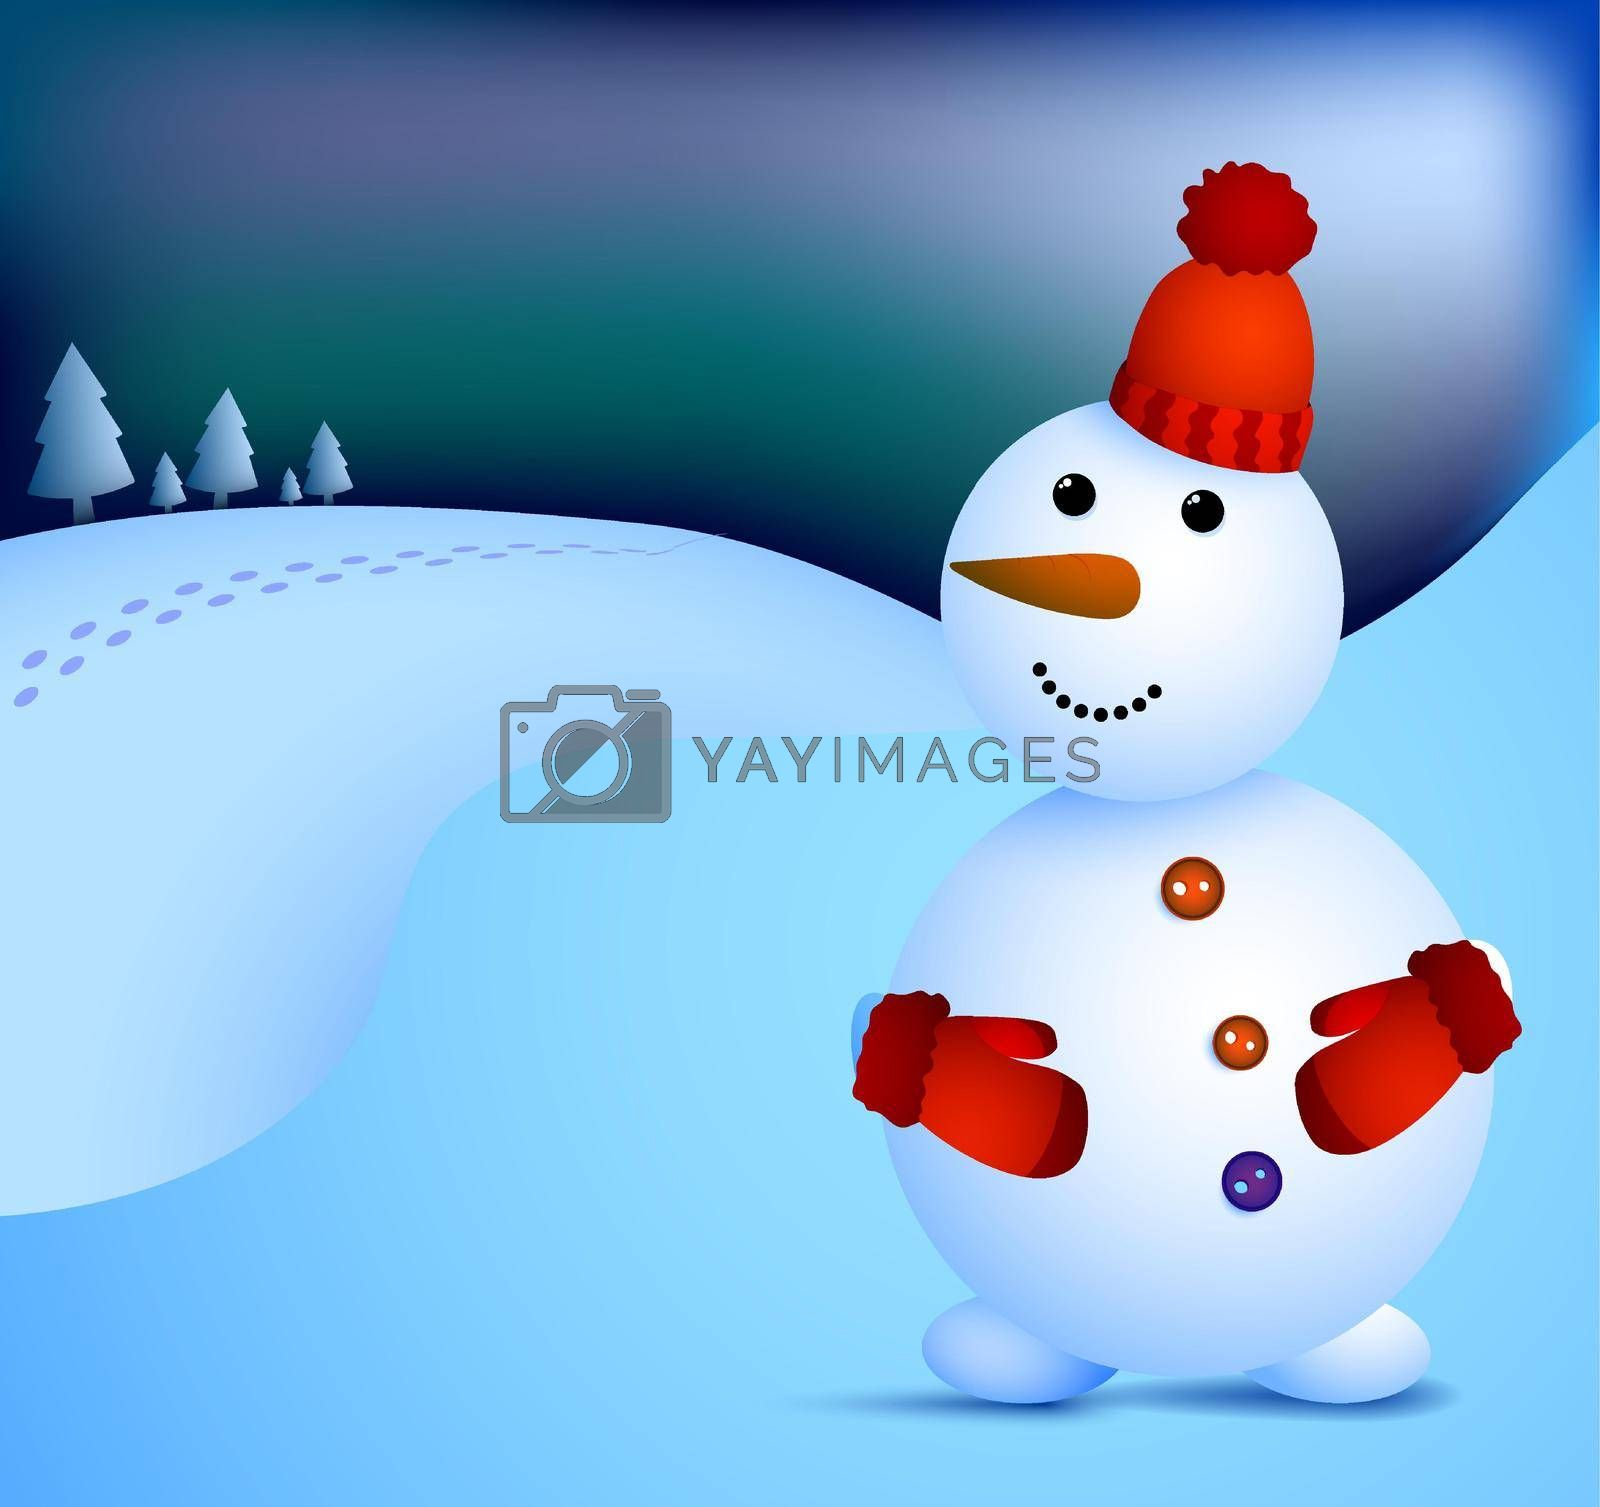 kind snowman stands at night and looks at northern lights. Winter cityscape and snowman. Meeting of Christmas and New Year. Winter fun. Cartoon vector